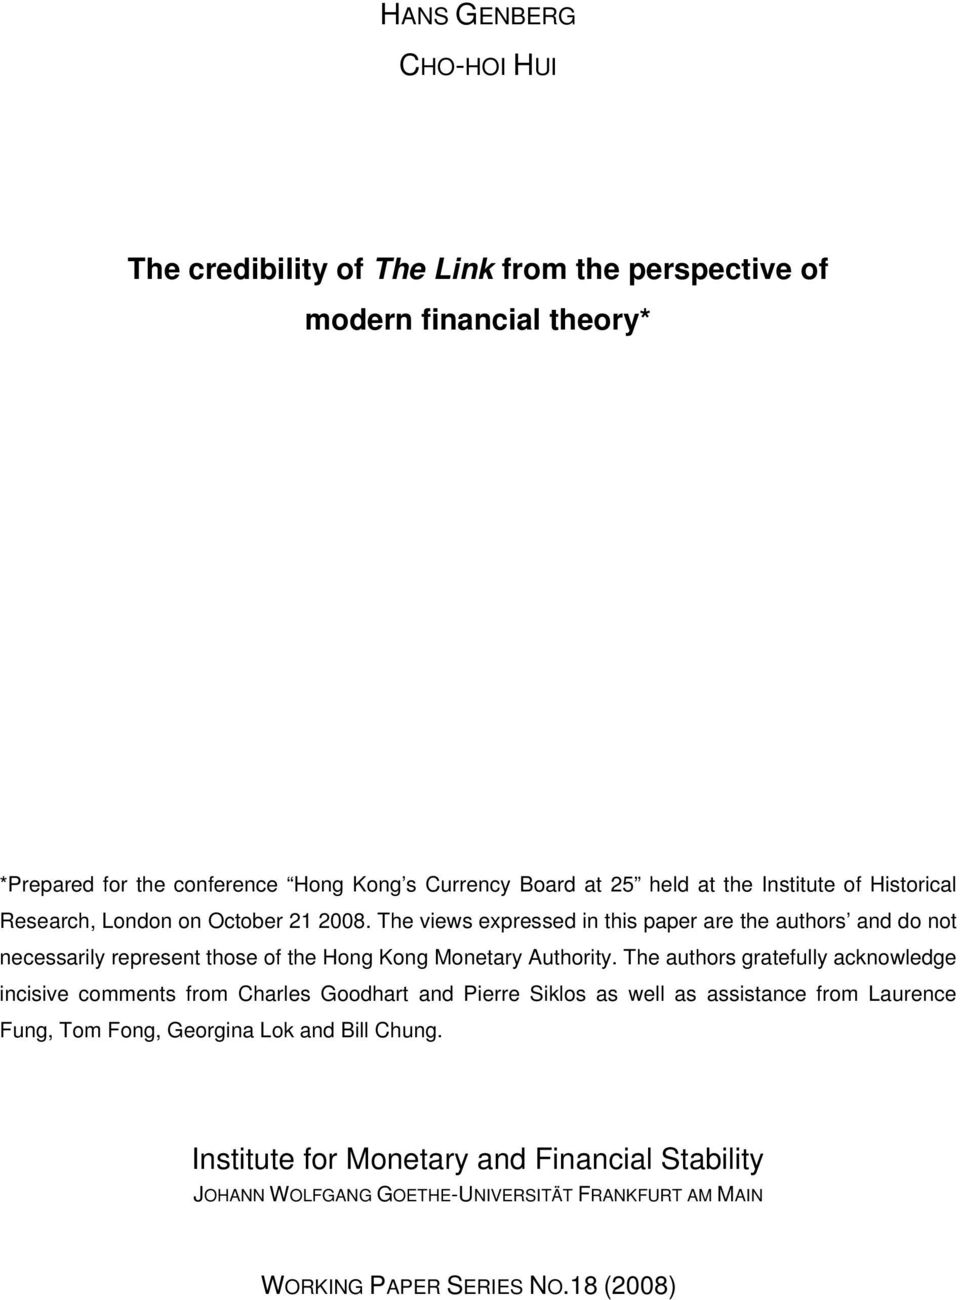 The views expressed in this paper are the authors and do not necessarily represent those of the Hong Kong Monetary Authority.